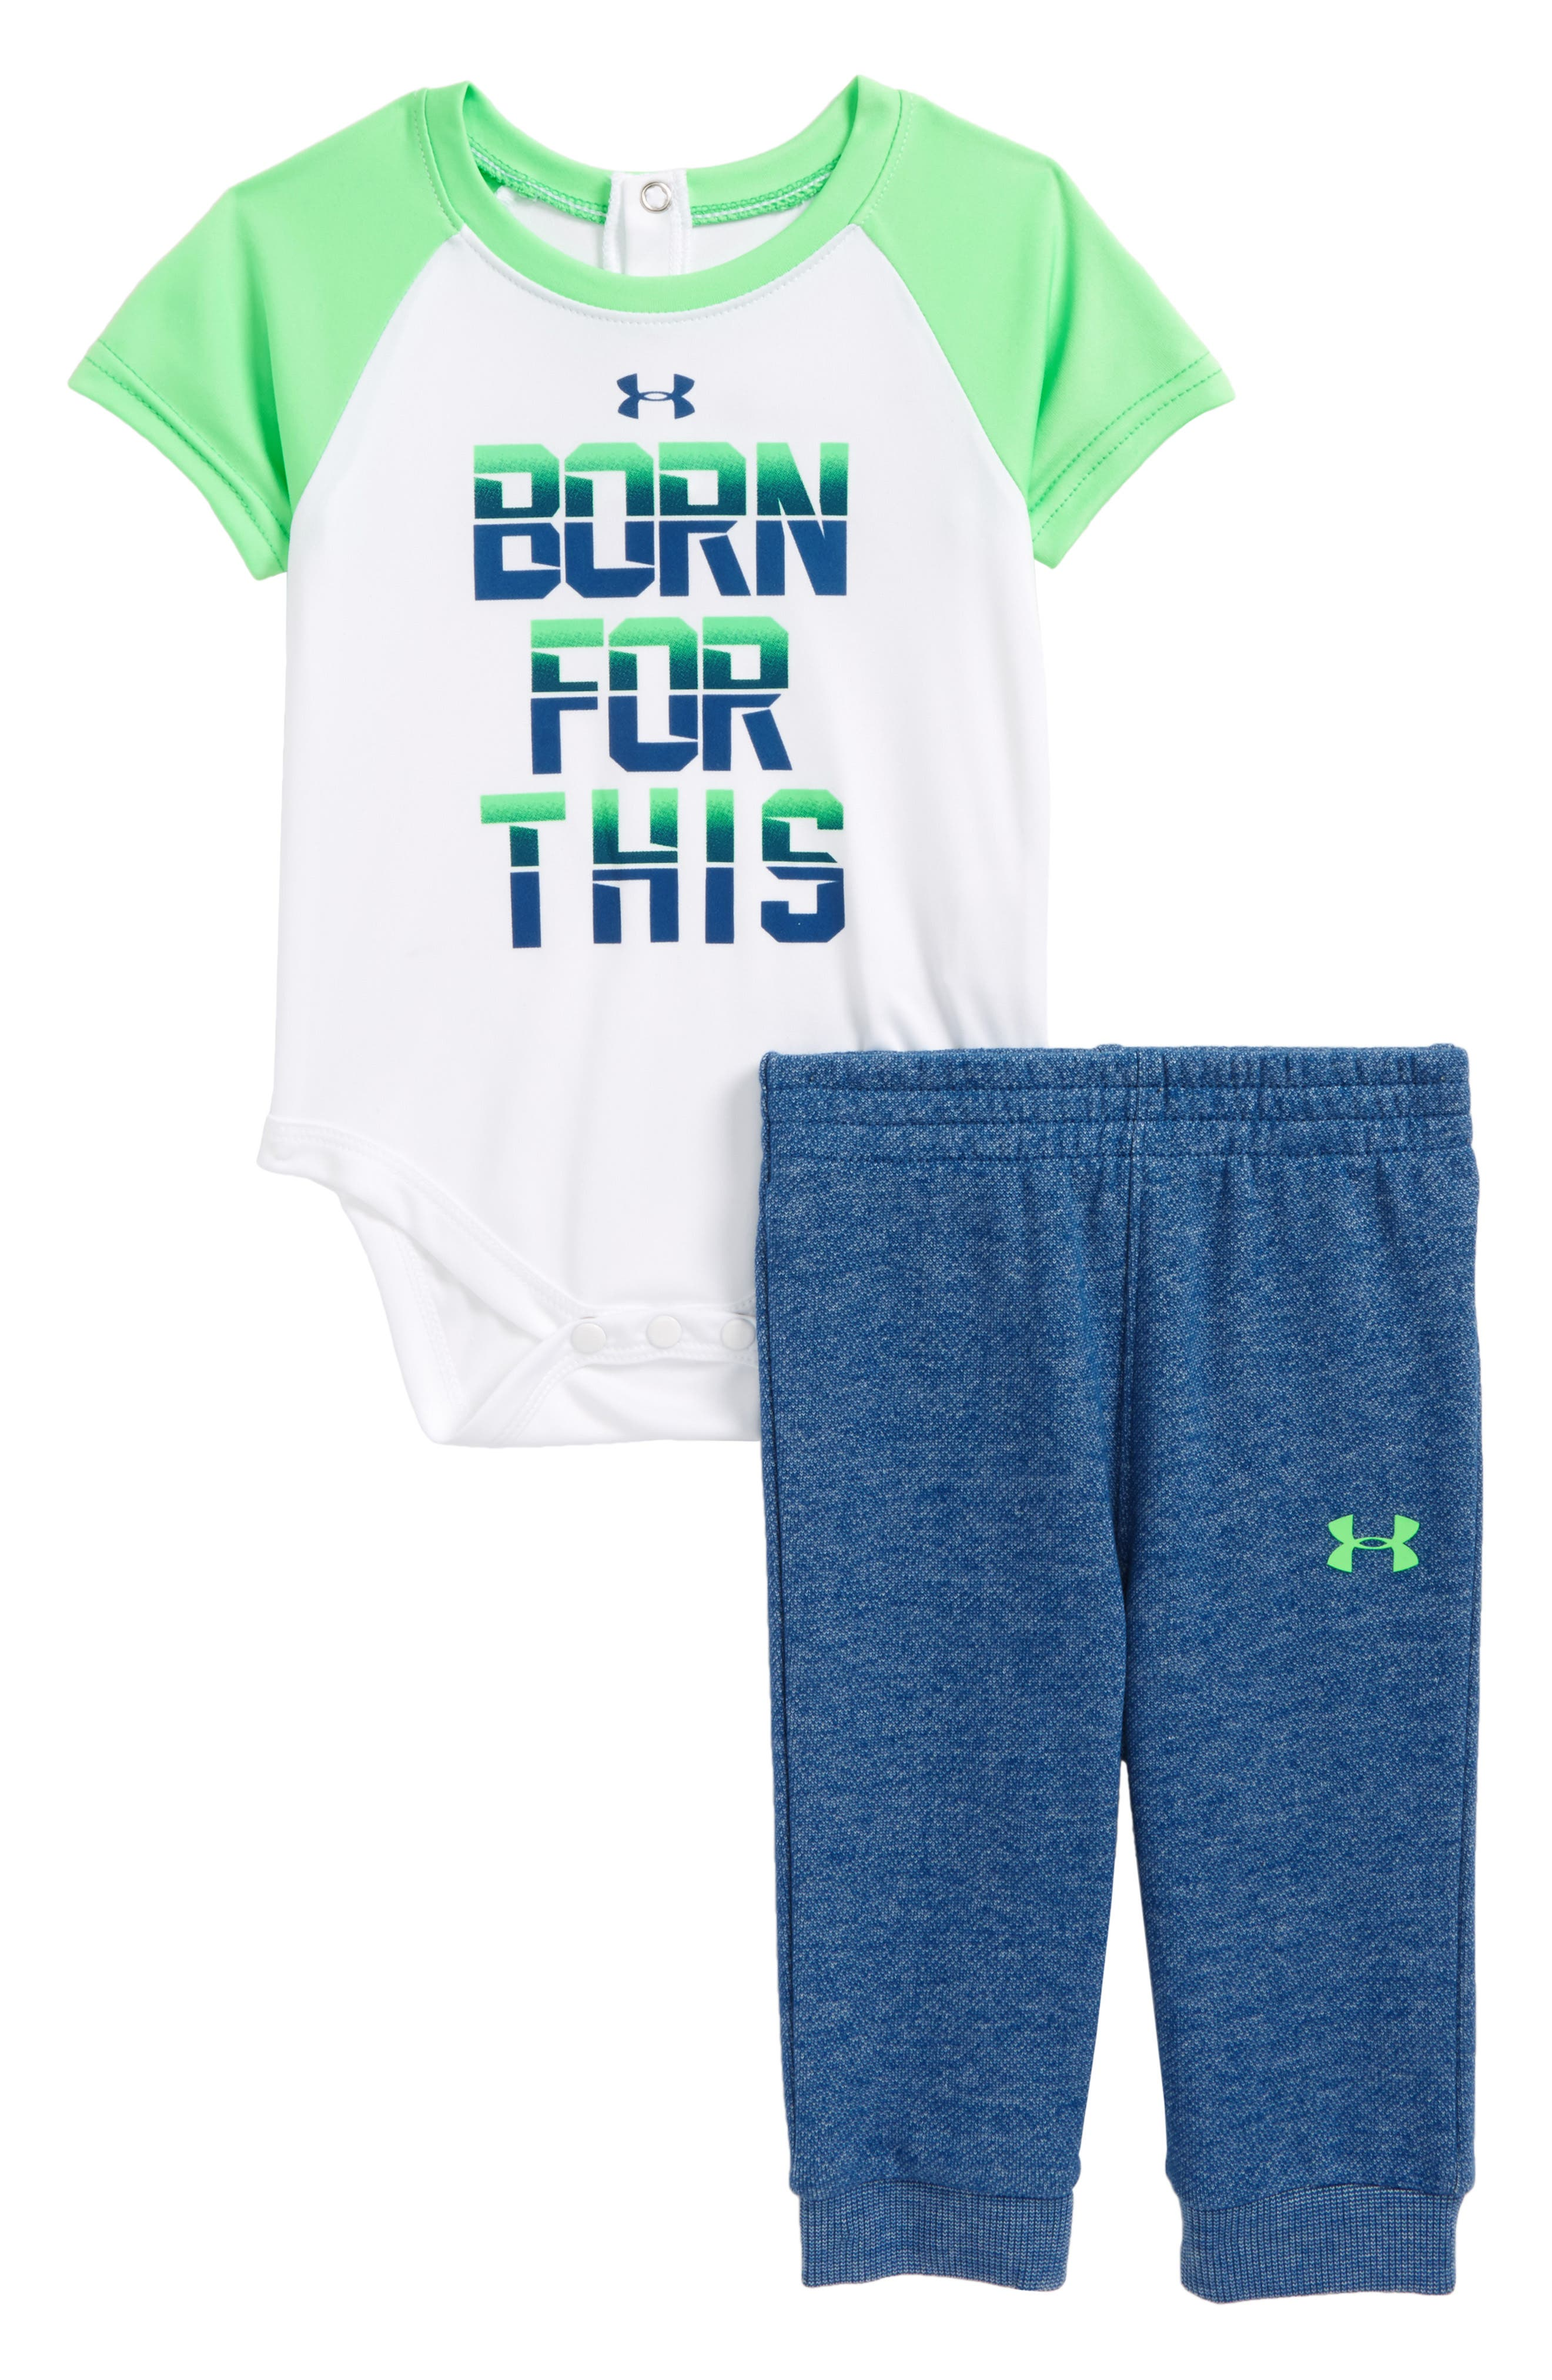 Alternate Image 1 Selected - Under Armour Born For This Bodysuit & Pants Set (Baby Boys)